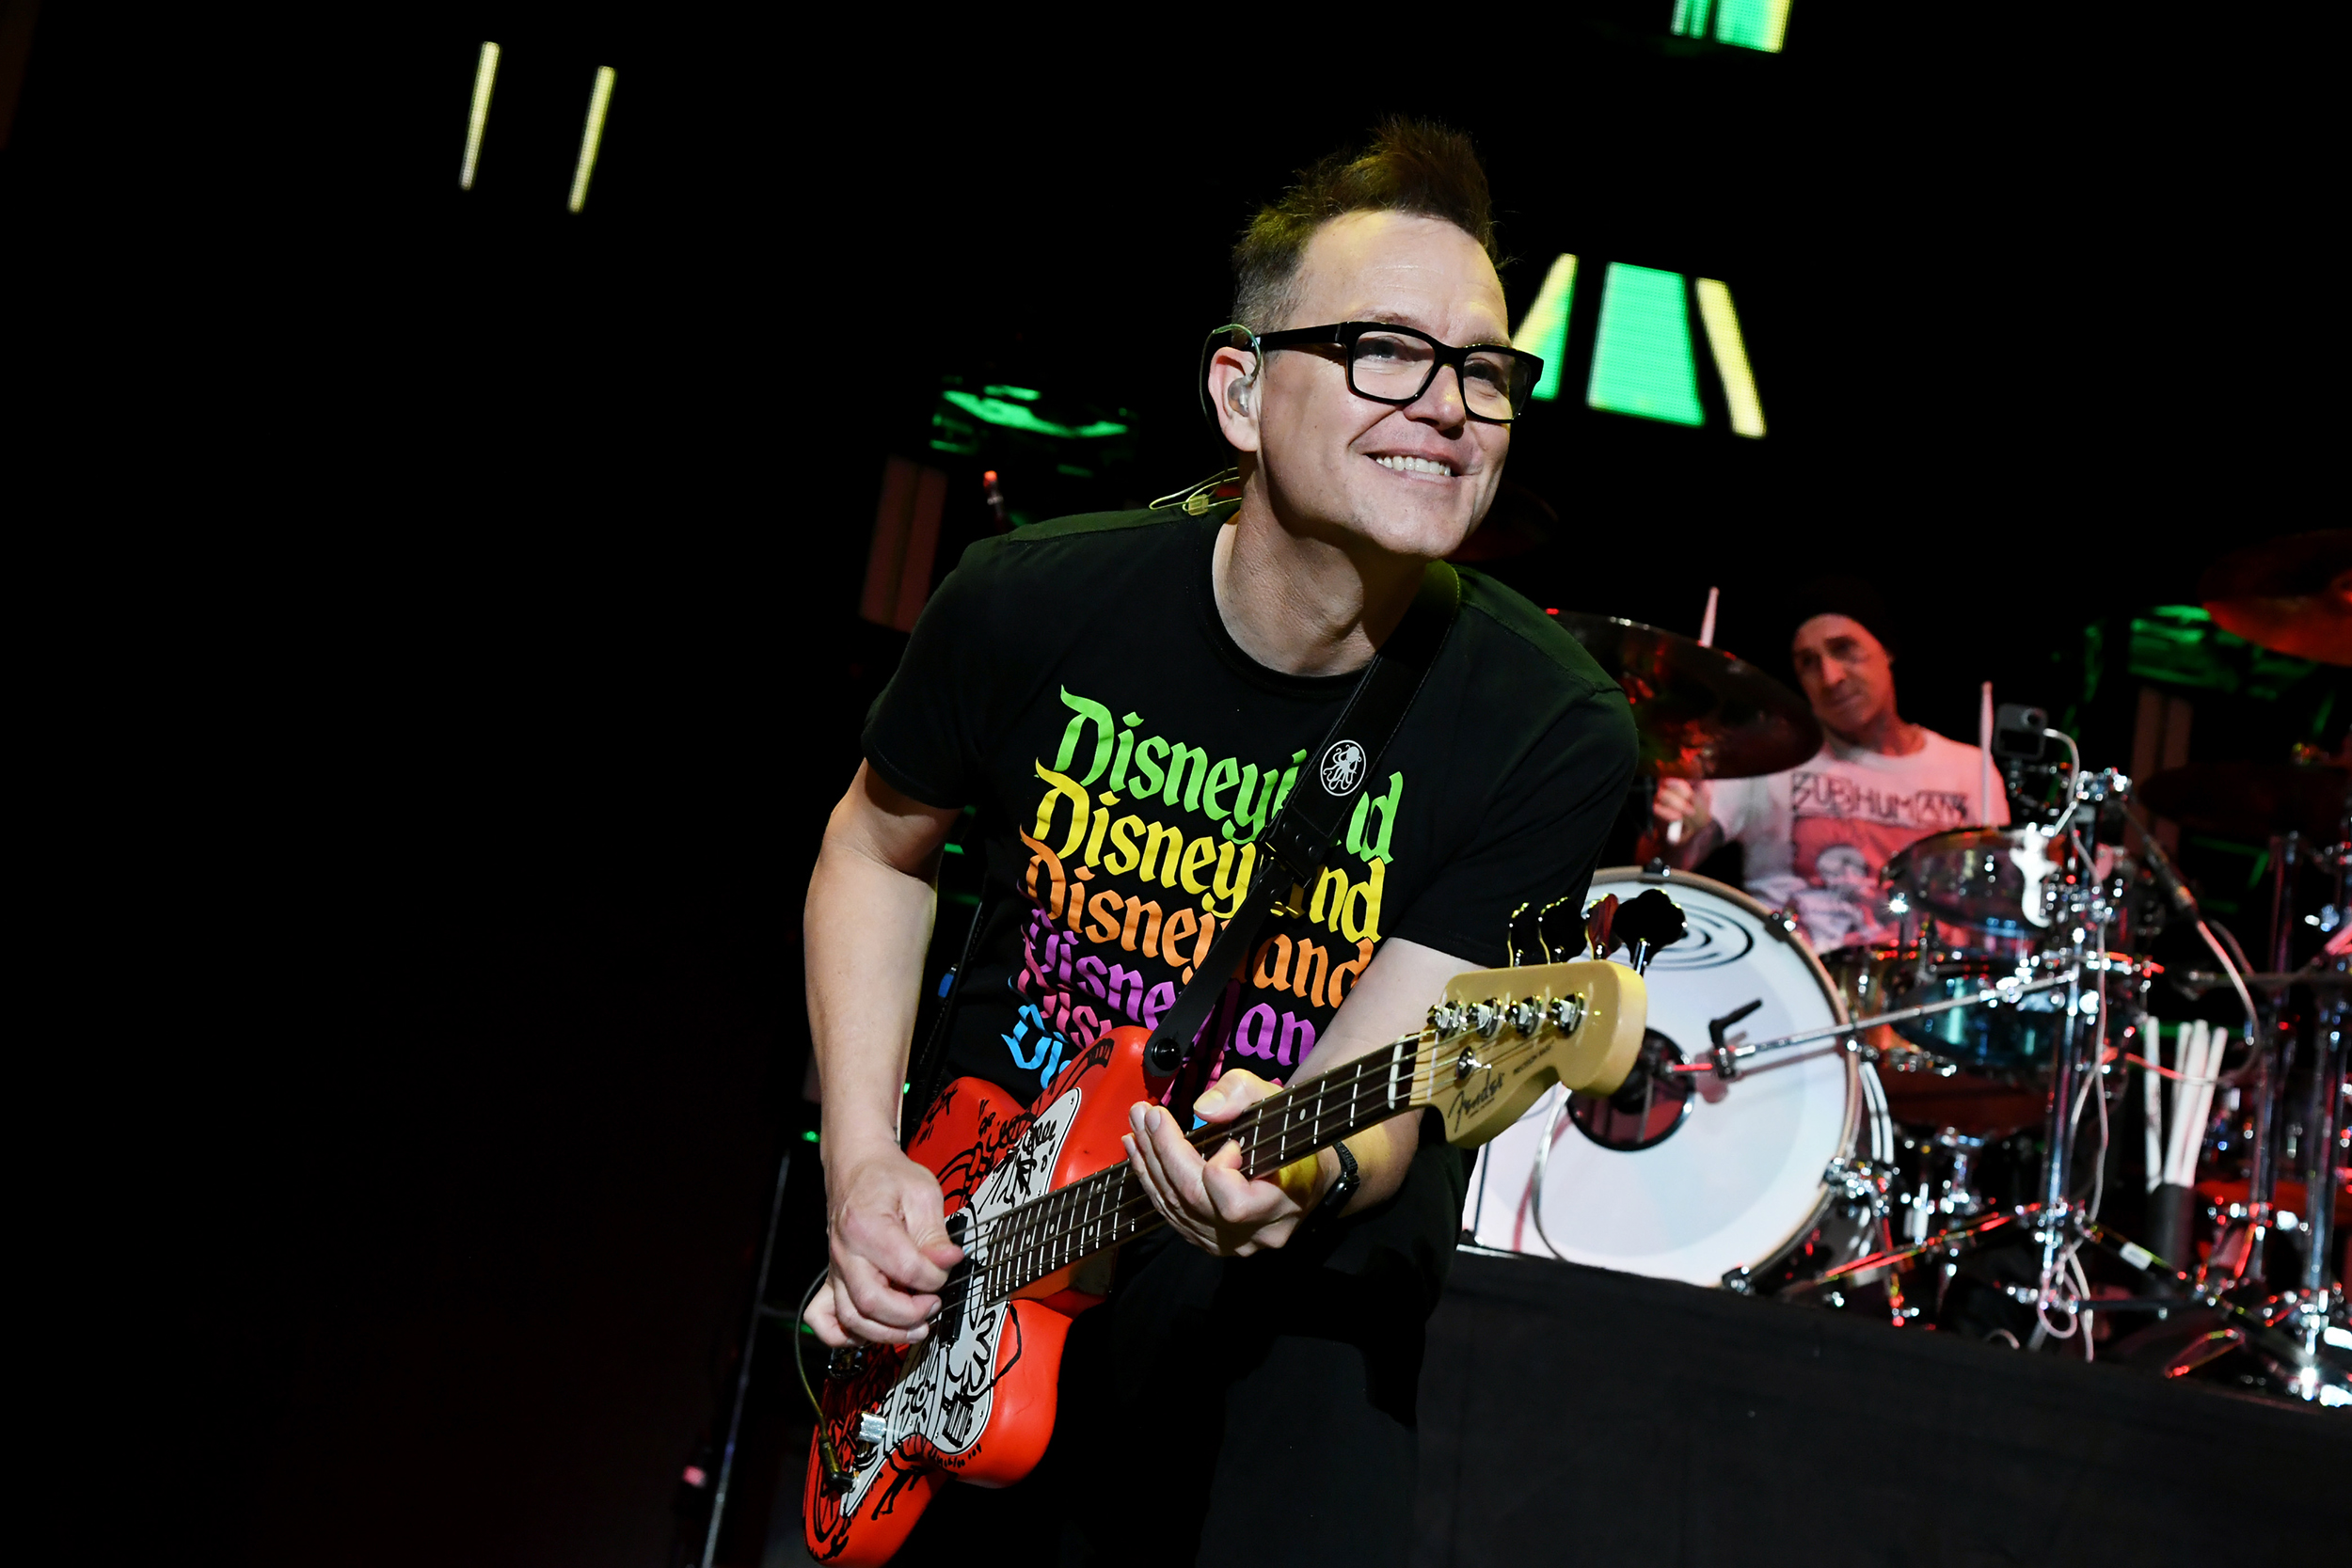 Blink-182 bassist and vocalist Mark Hoppus says he is 'cancer free'